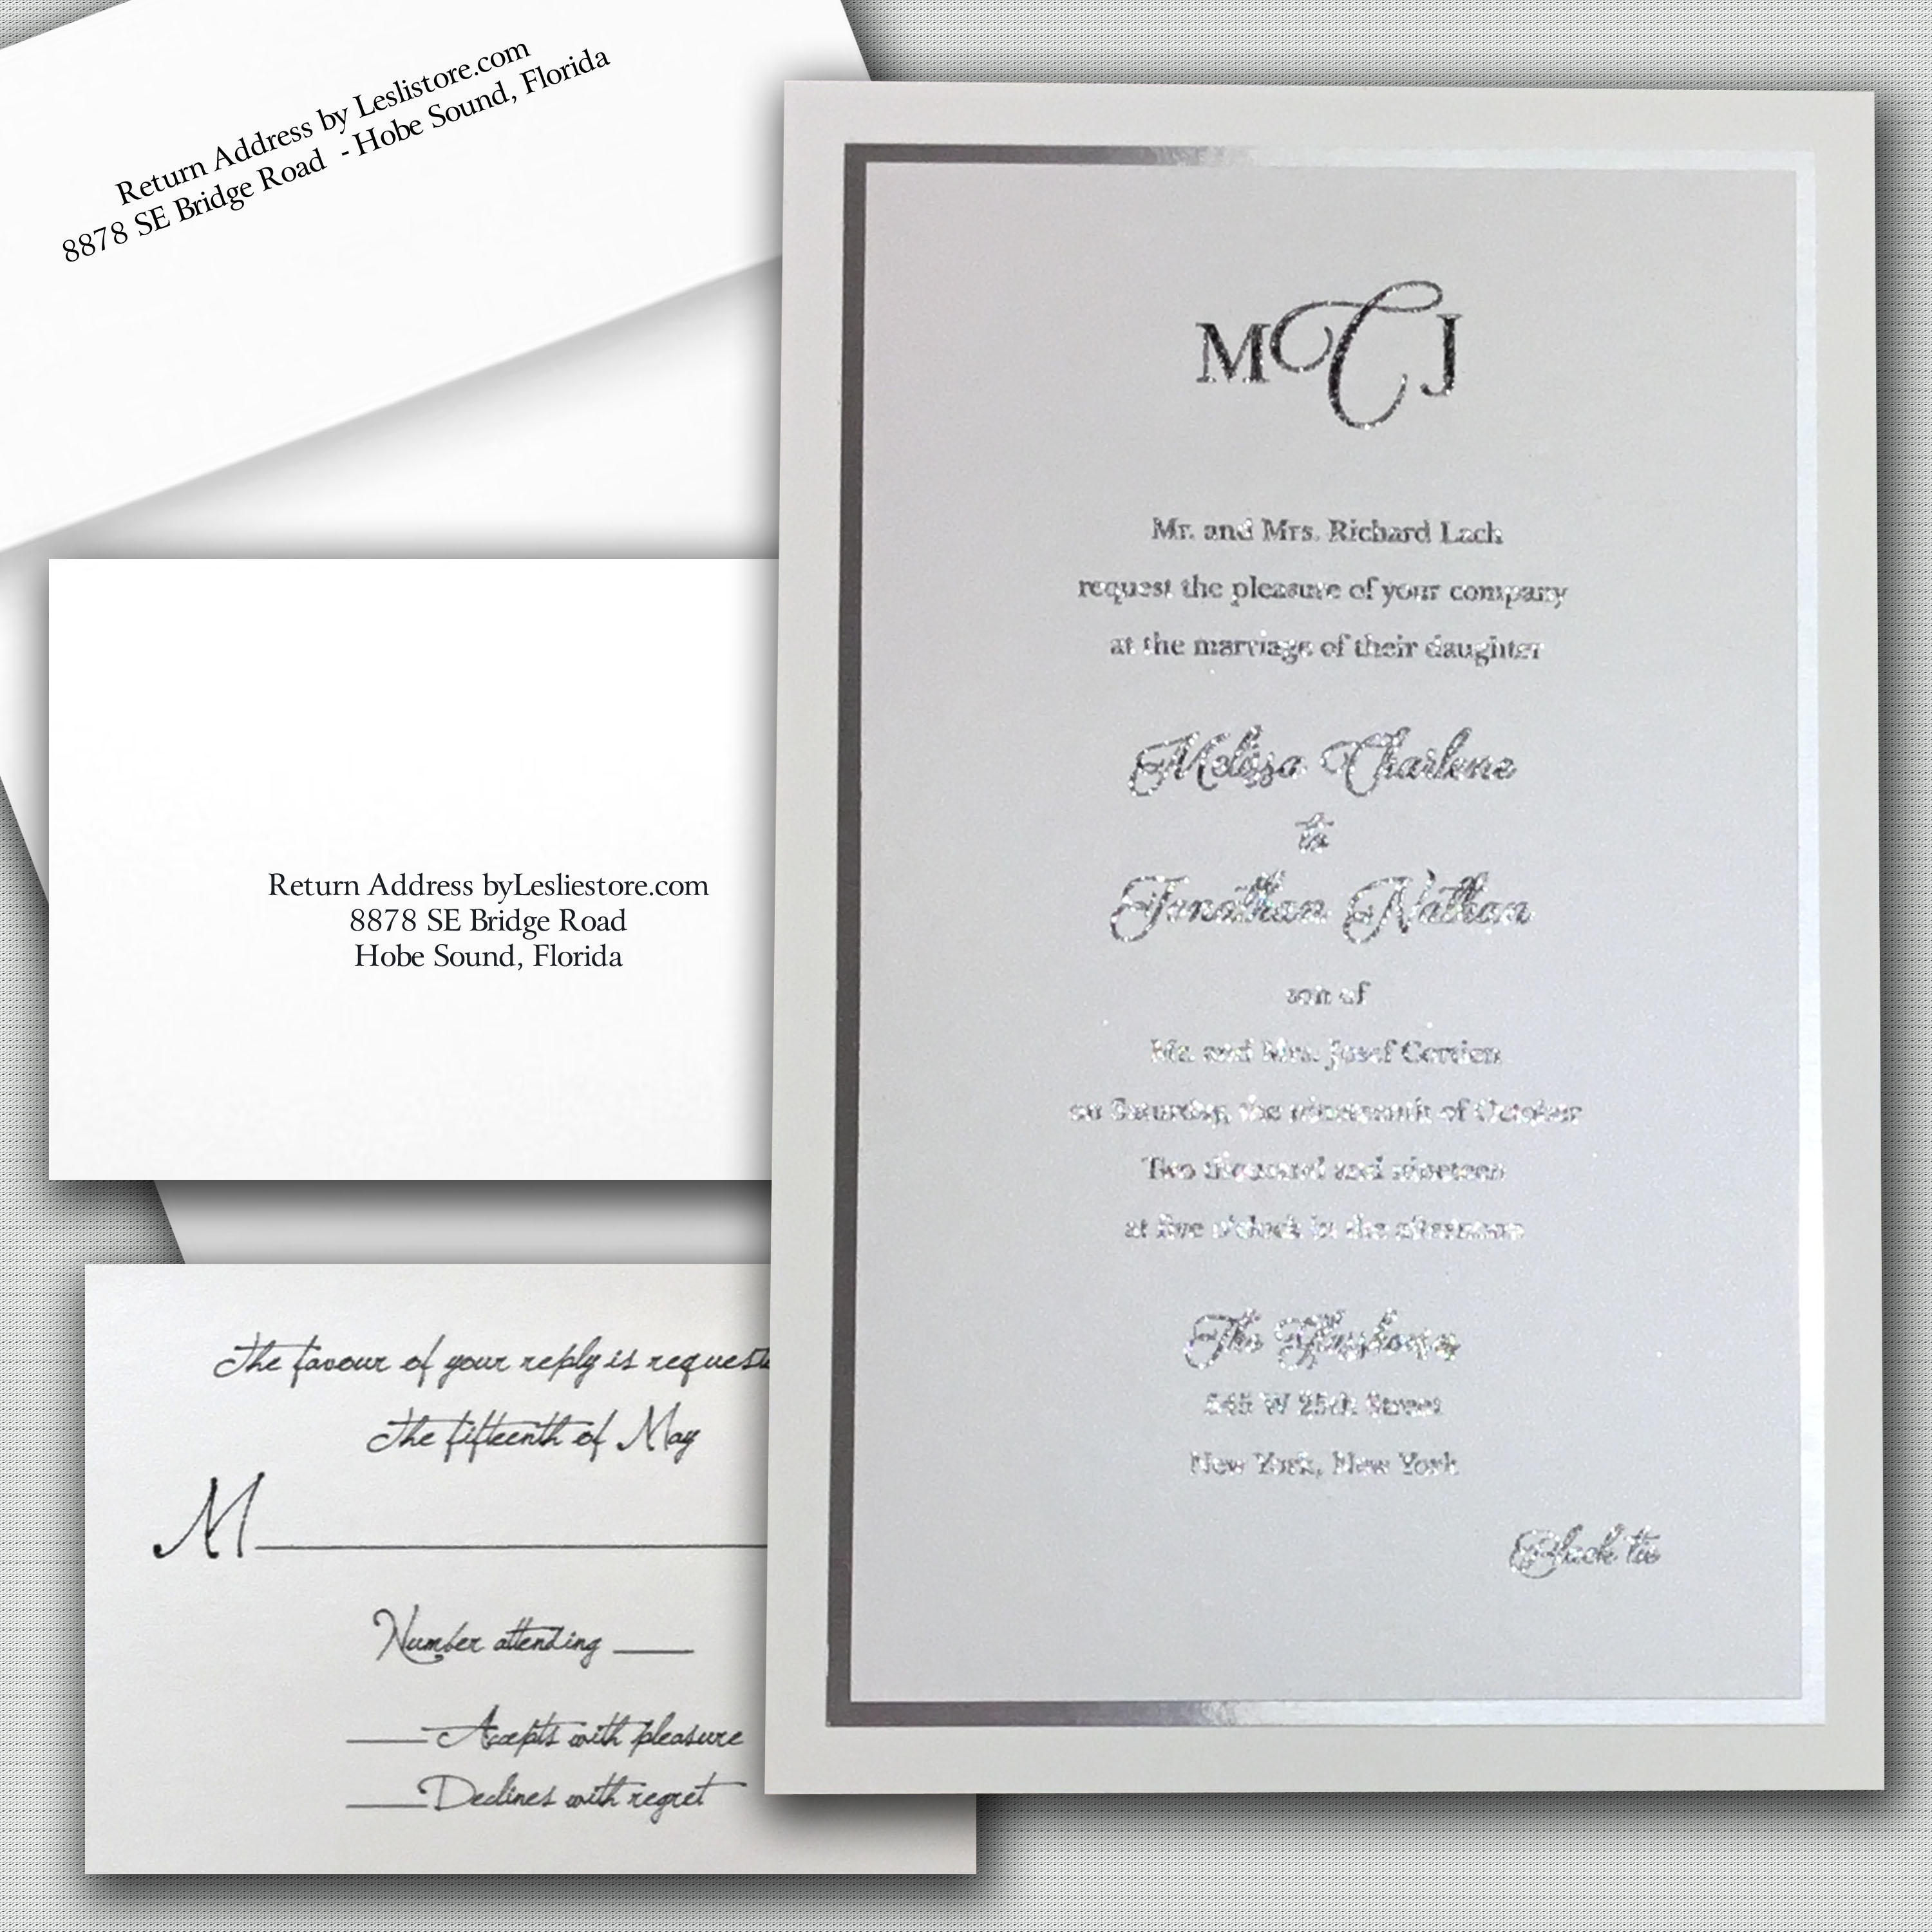 Leslie Store Wedding Invitations & Stationery image 6